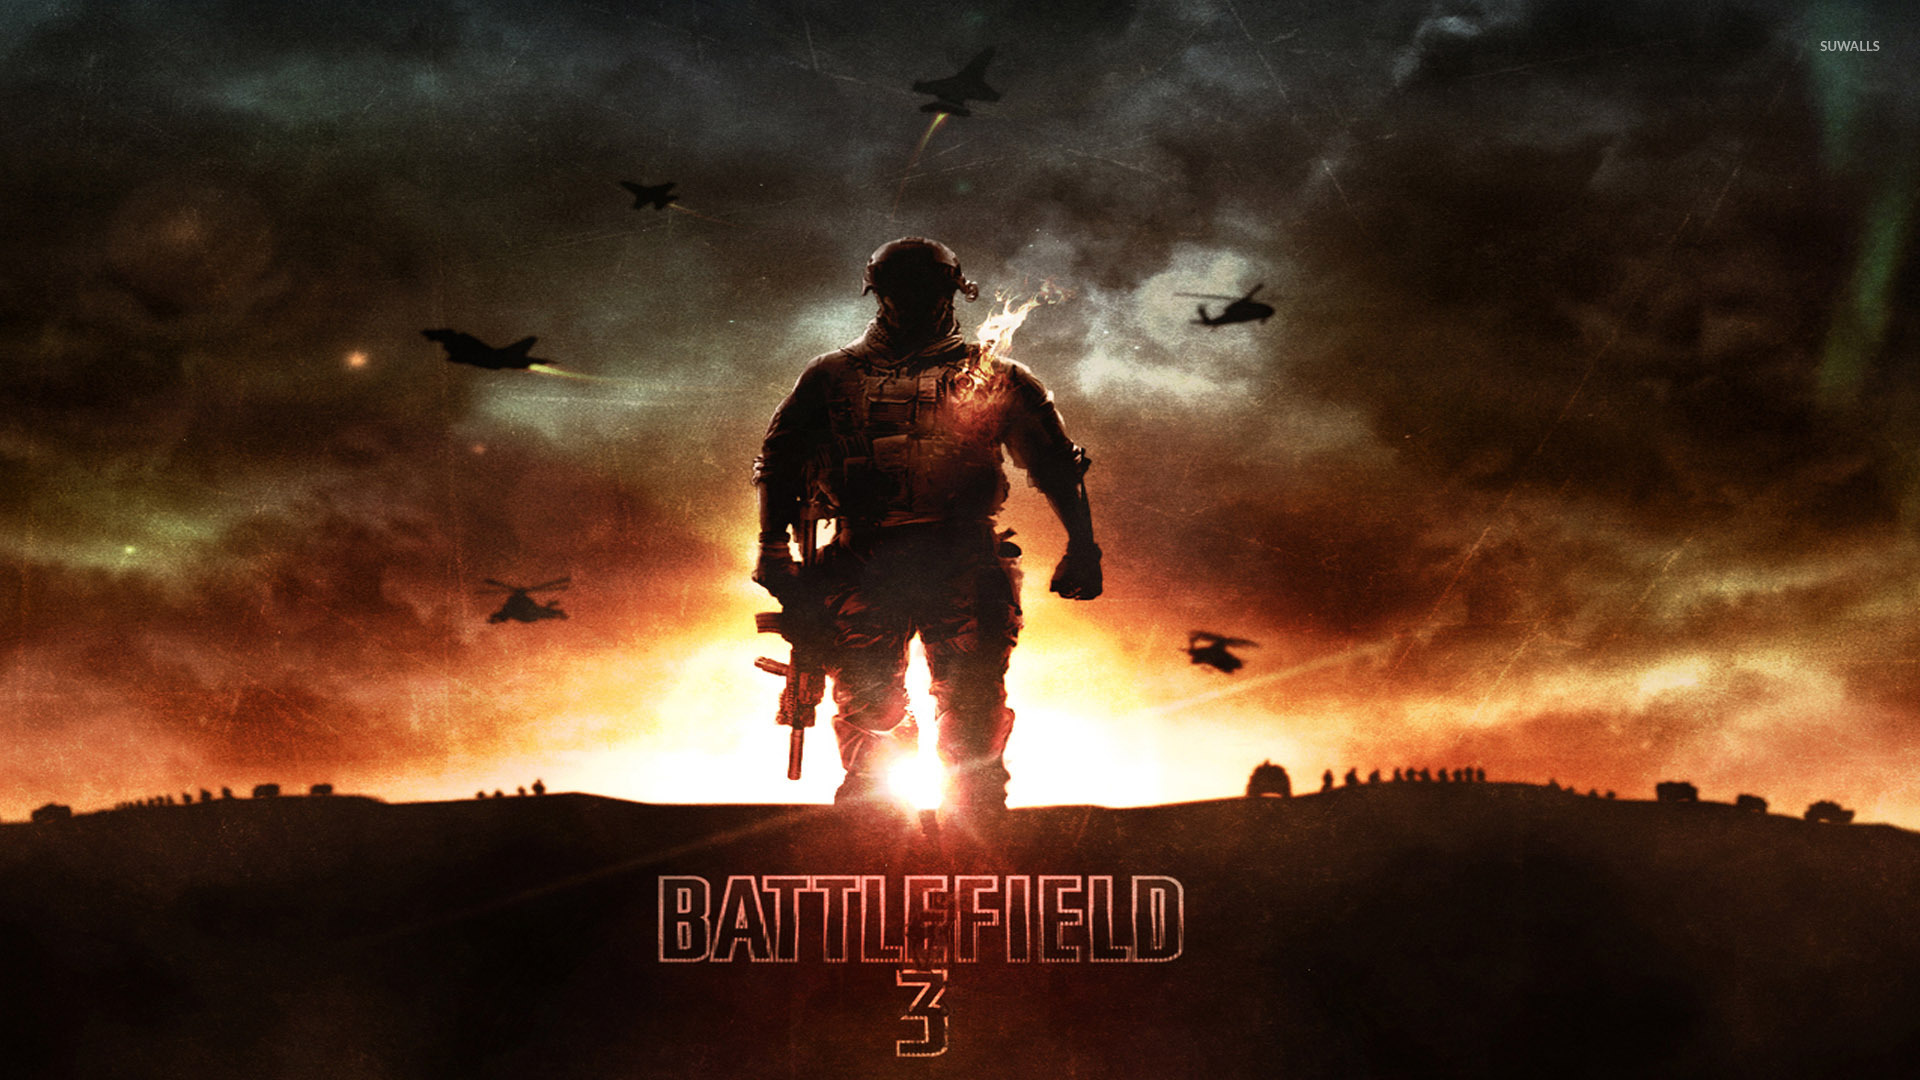 Videogame Wallpapers With Quotes Battlefield 3 18 Wallpaper Game Wallpapers 30808